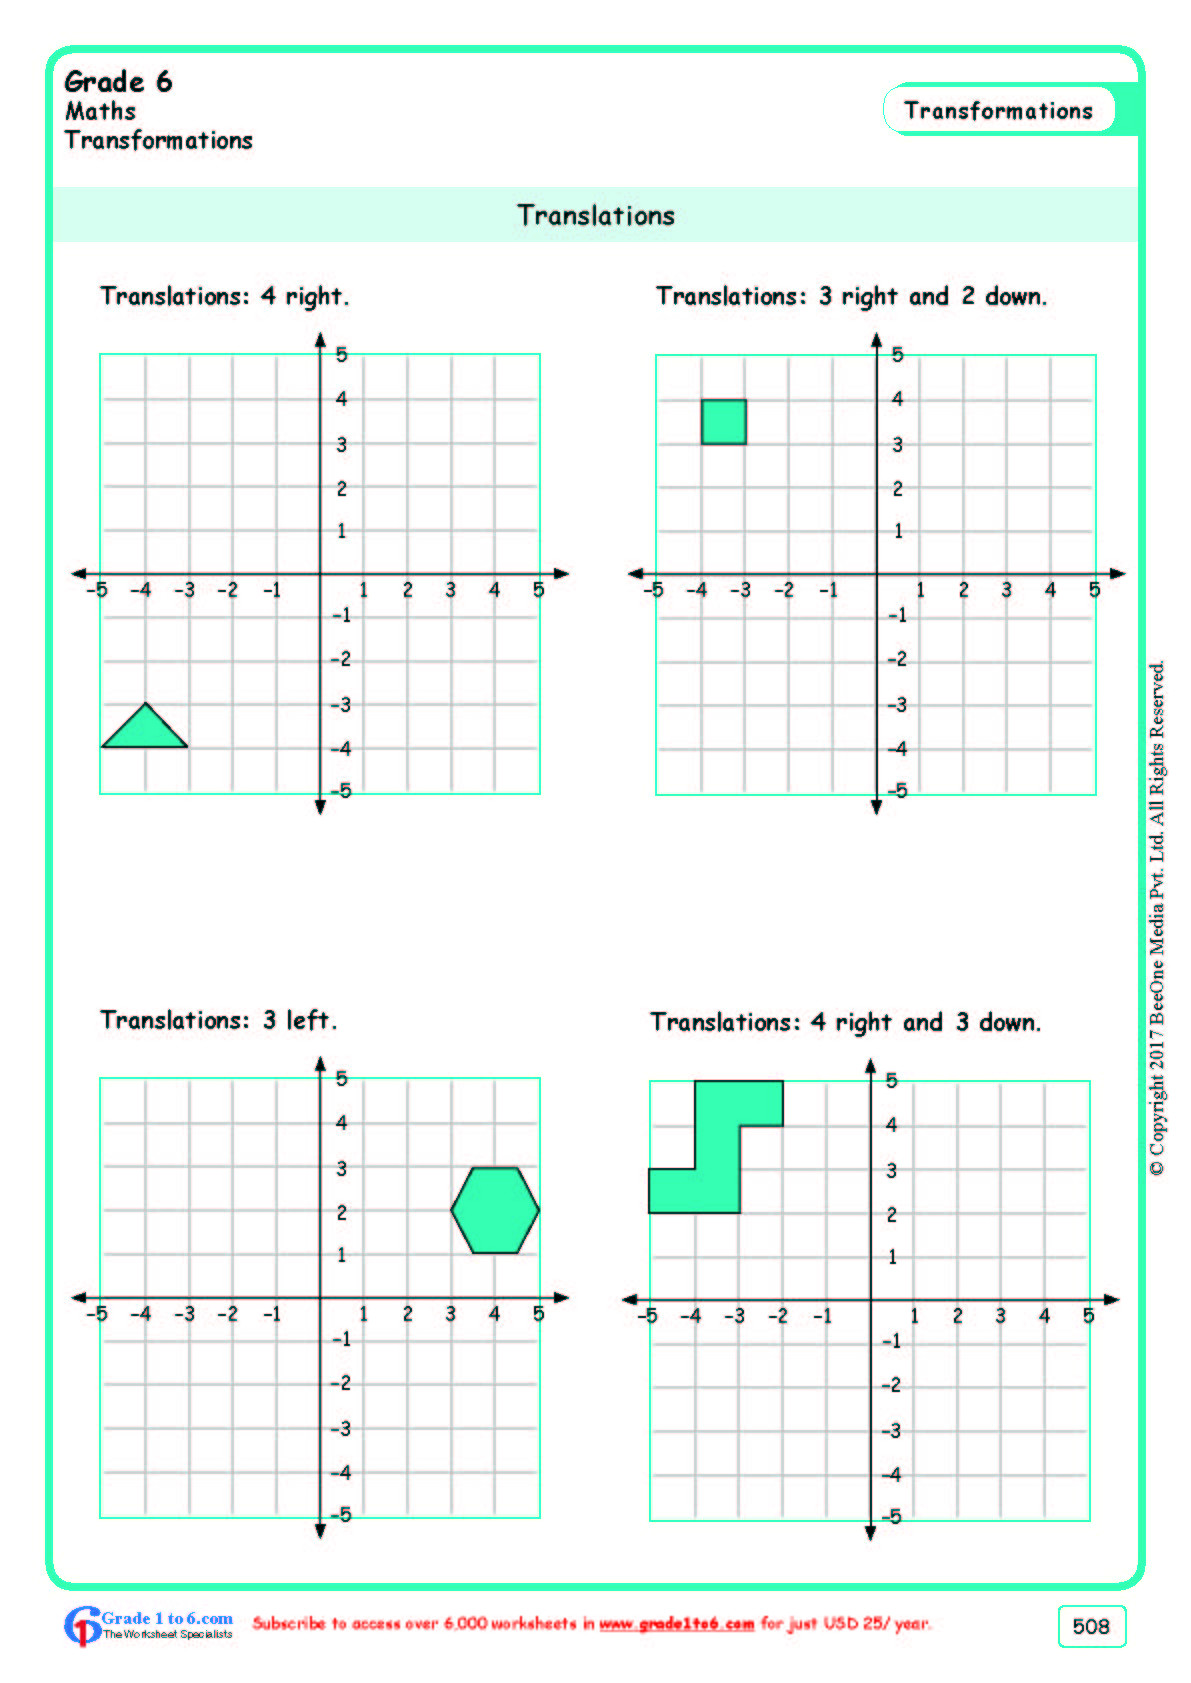 Translations Worksheets Math Grade 6 Class Six Translations Worksheets